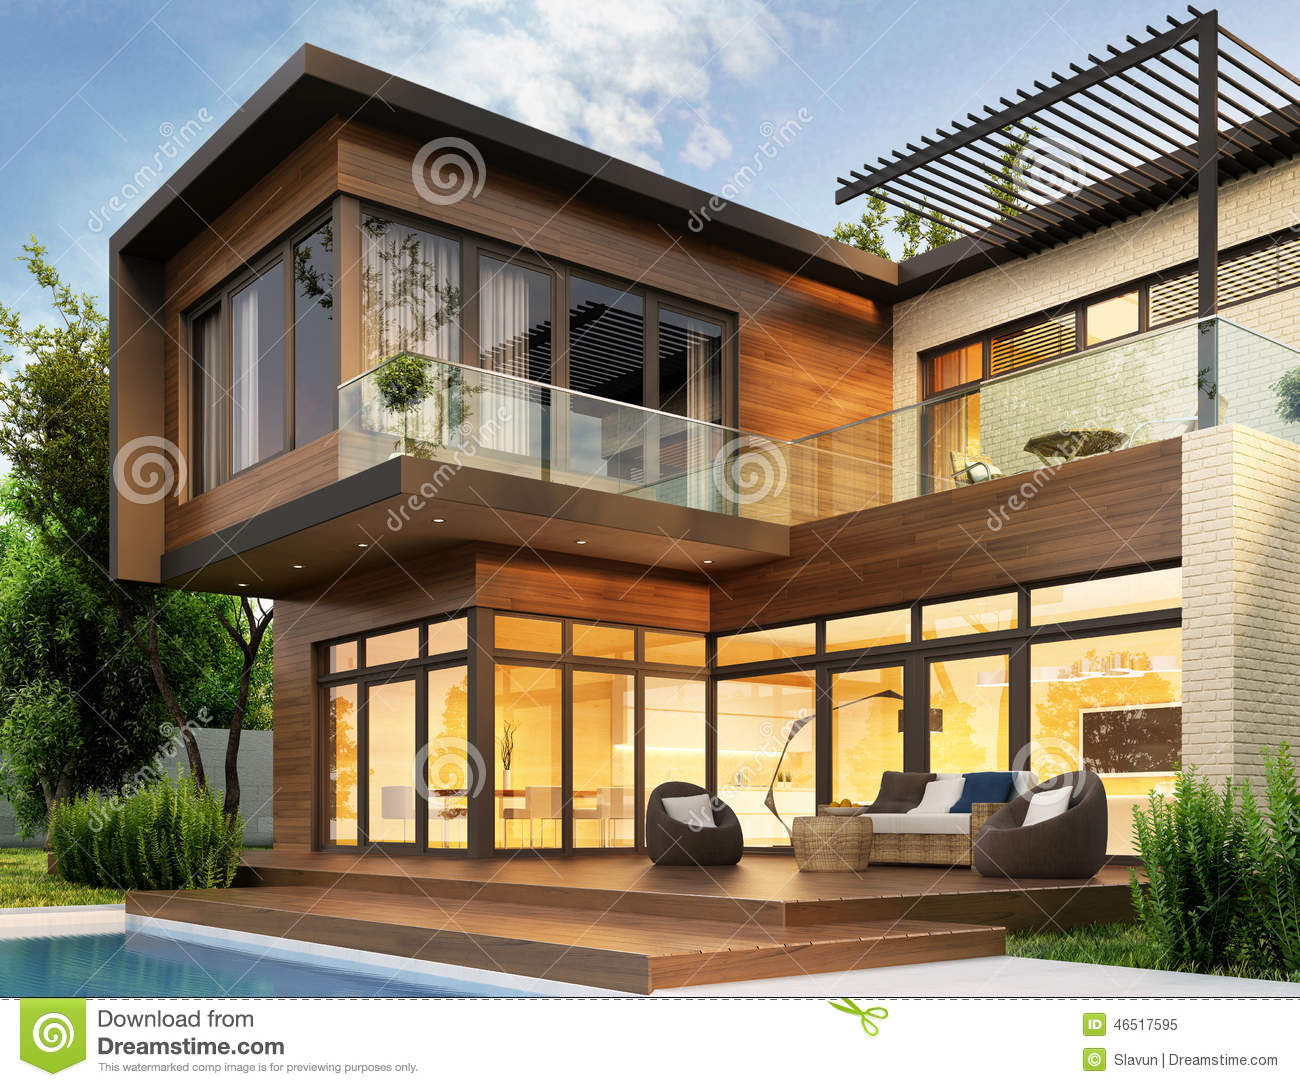 A Home That S Modern Inside And Out: Modern House Stock Photo